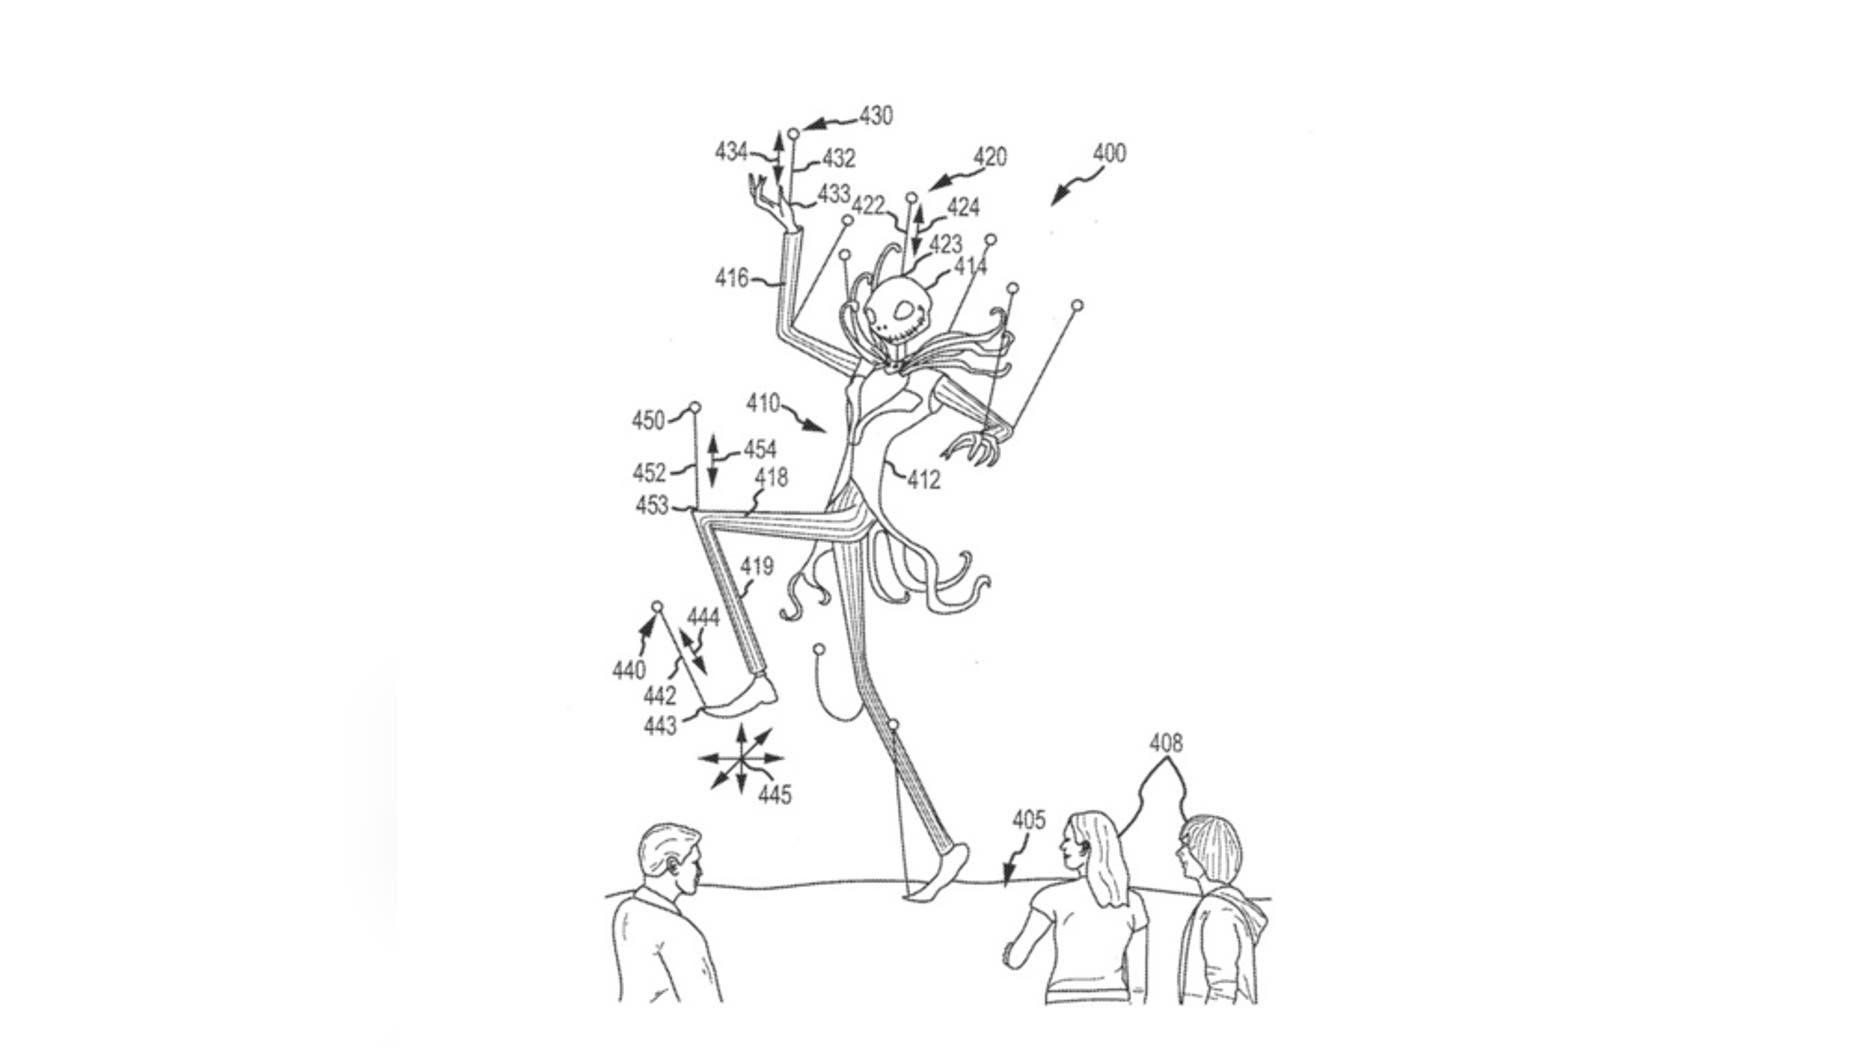 An illustration from a patent filed by Disney on Aug. 21 shows how drones could control a huge puppet's dance moves.